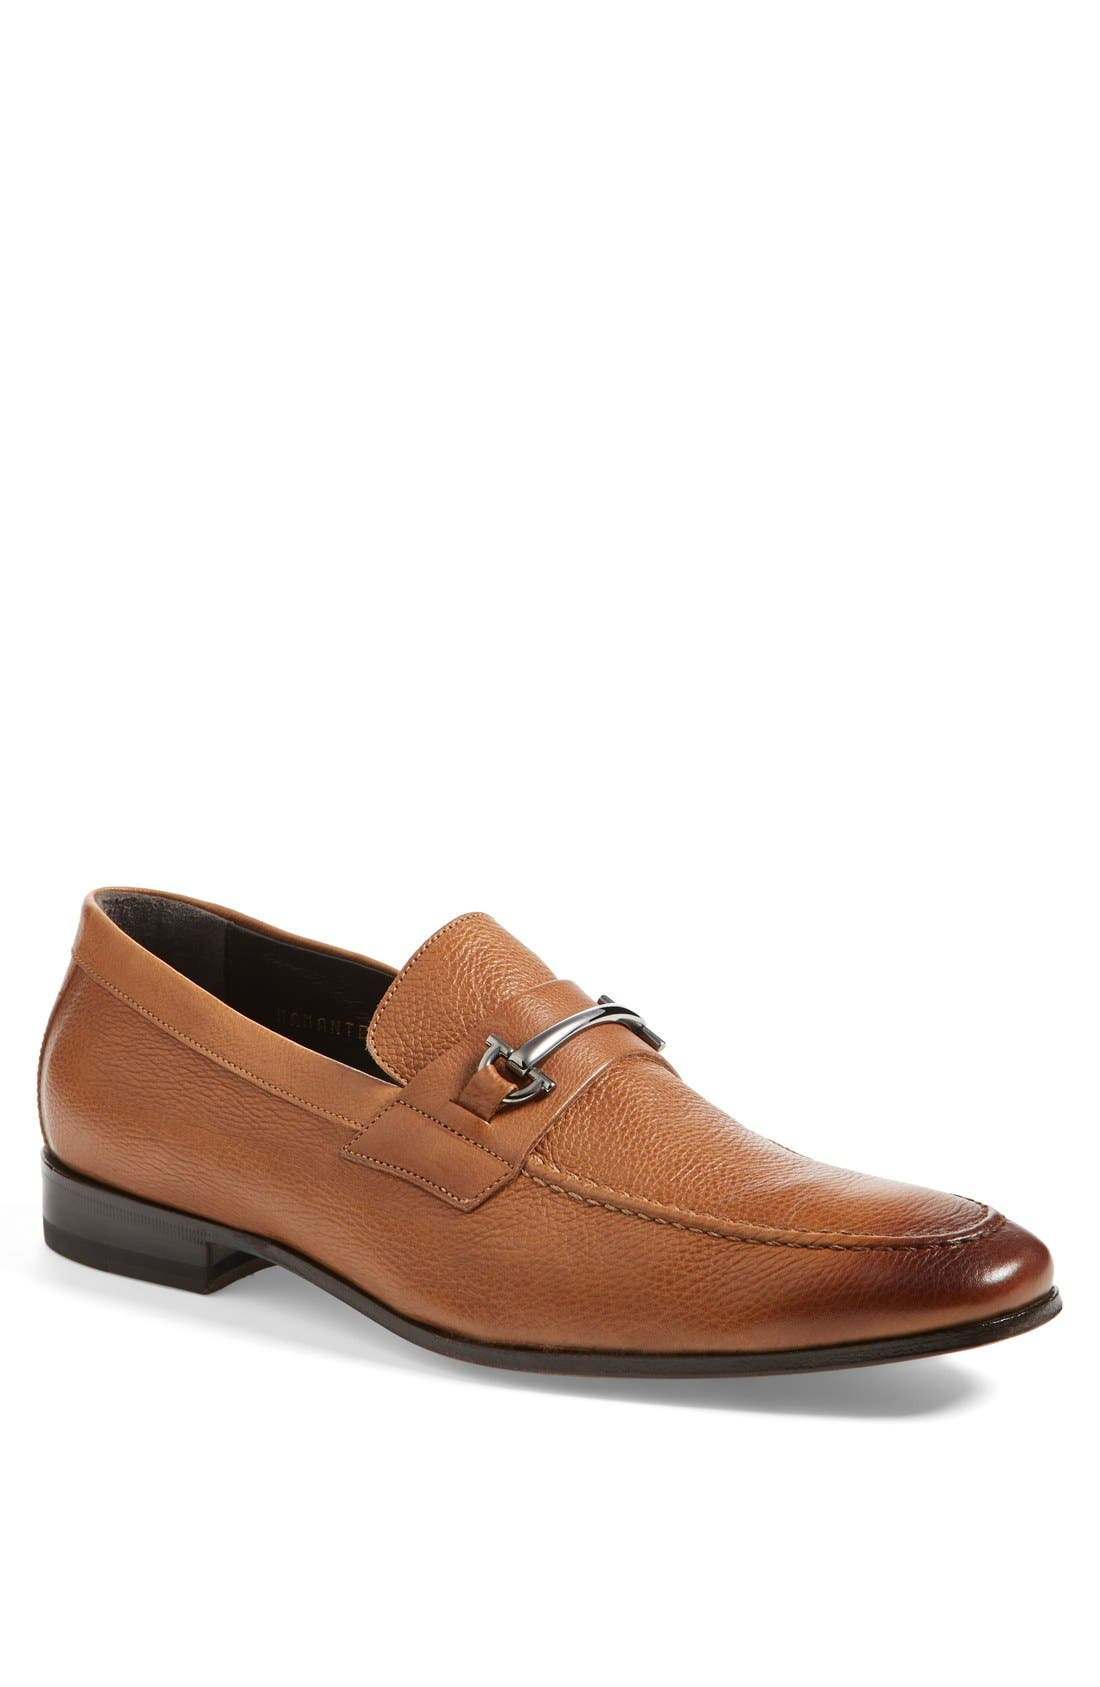 Main Image - Bruno Magli 'Mamante II' Pebbled Leather Loafer